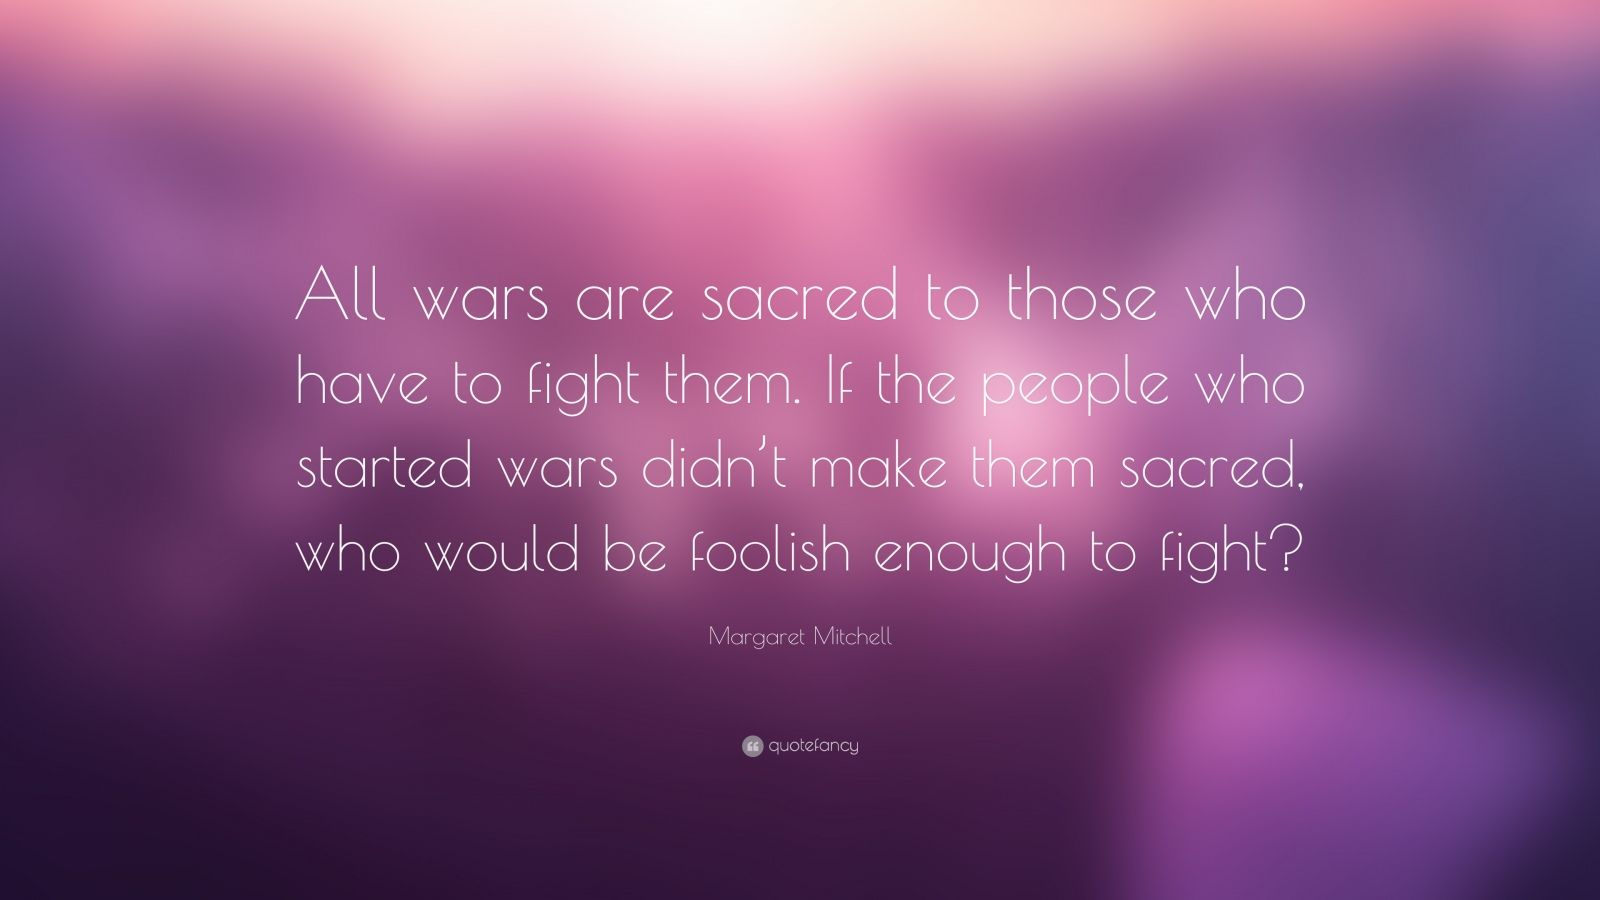 """Margaret Mitchell Quote: """"All wars are sacred to those who have to fight them. If the people who started wars didn't make them sacred, who would be foolish enough to fight?"""""""